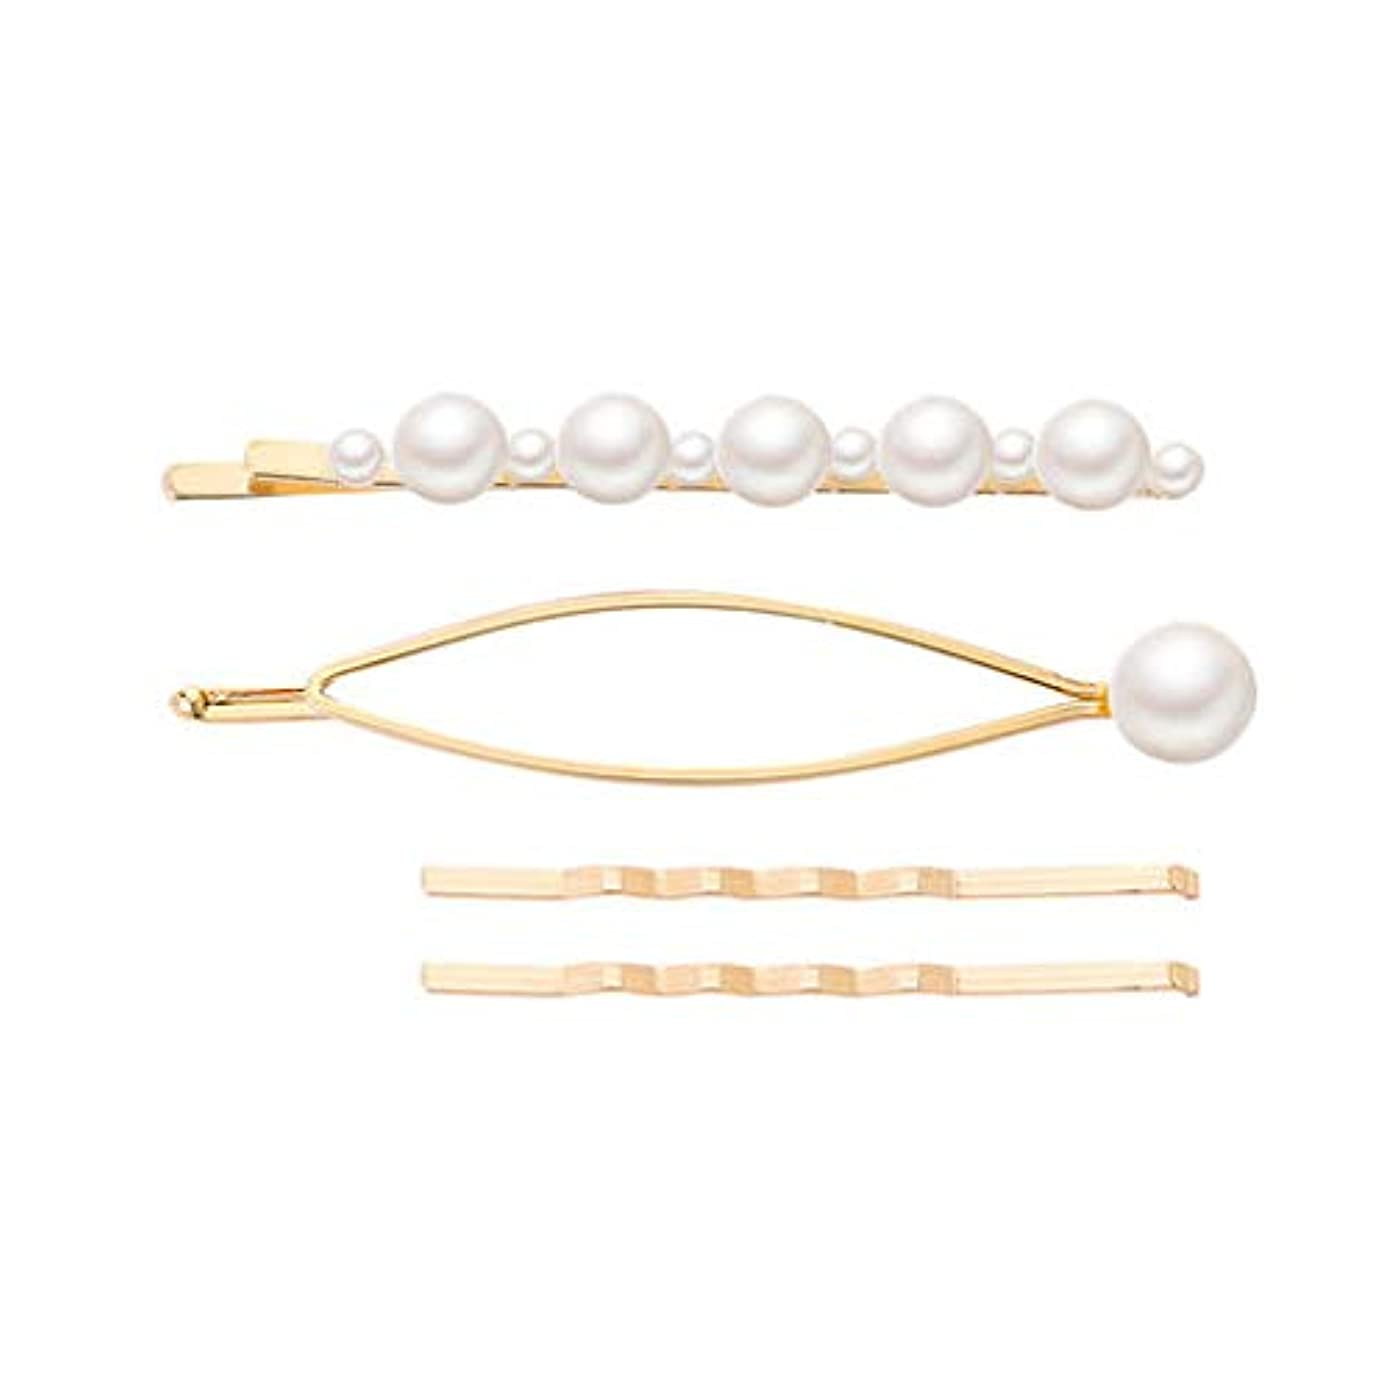 Junshion INS Women's Cute Girl Pearl Beads Hairpin Hair Accessories Gift 4PC,Women Stylish Pearl Metal Hair Clip